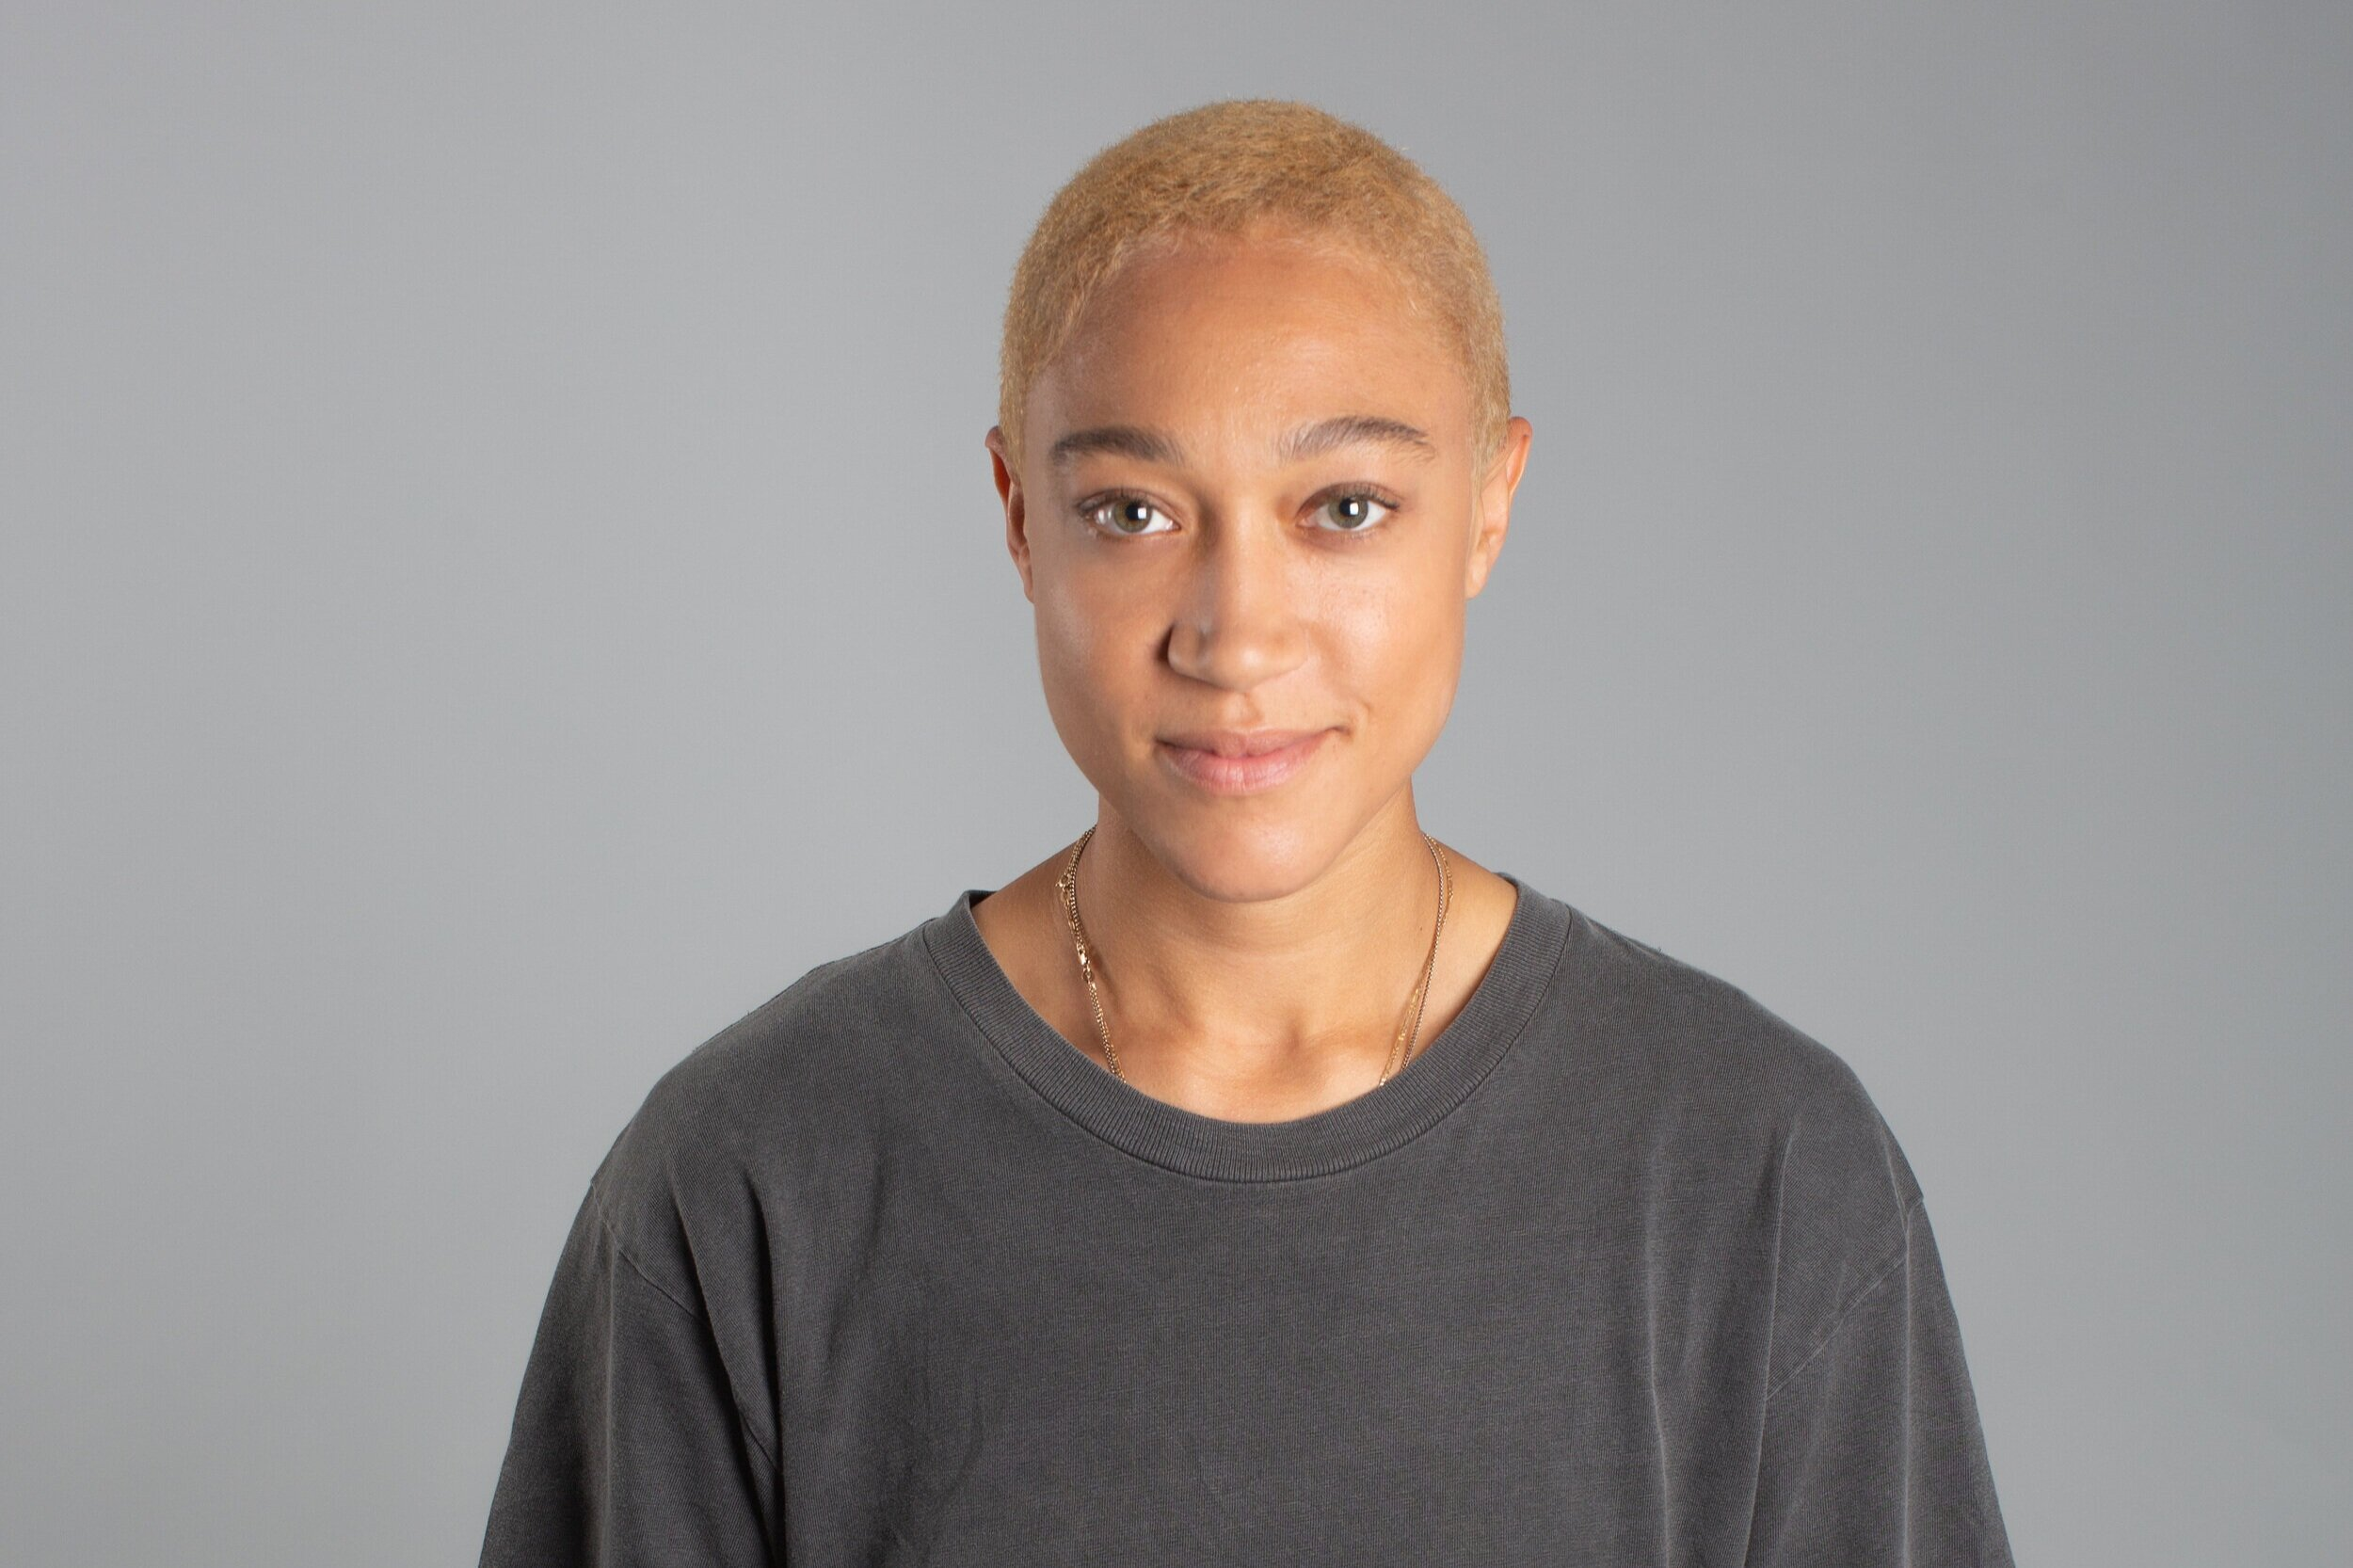 Chloe Freeman is a British entrepreneur and actor, based in New York. She has recently launched and received investment for Boycott Entertainment - a production company focused on female and POC writers and directors. Outside of Boycott, she spends her time at Prehype (the venture studio responsible for Barkbox, Roman and Managed by Q) doing finance strategy and operations. You can catch Chloe in the recent Adidas, Google and Samsung commercials and her first feature film is out next year.